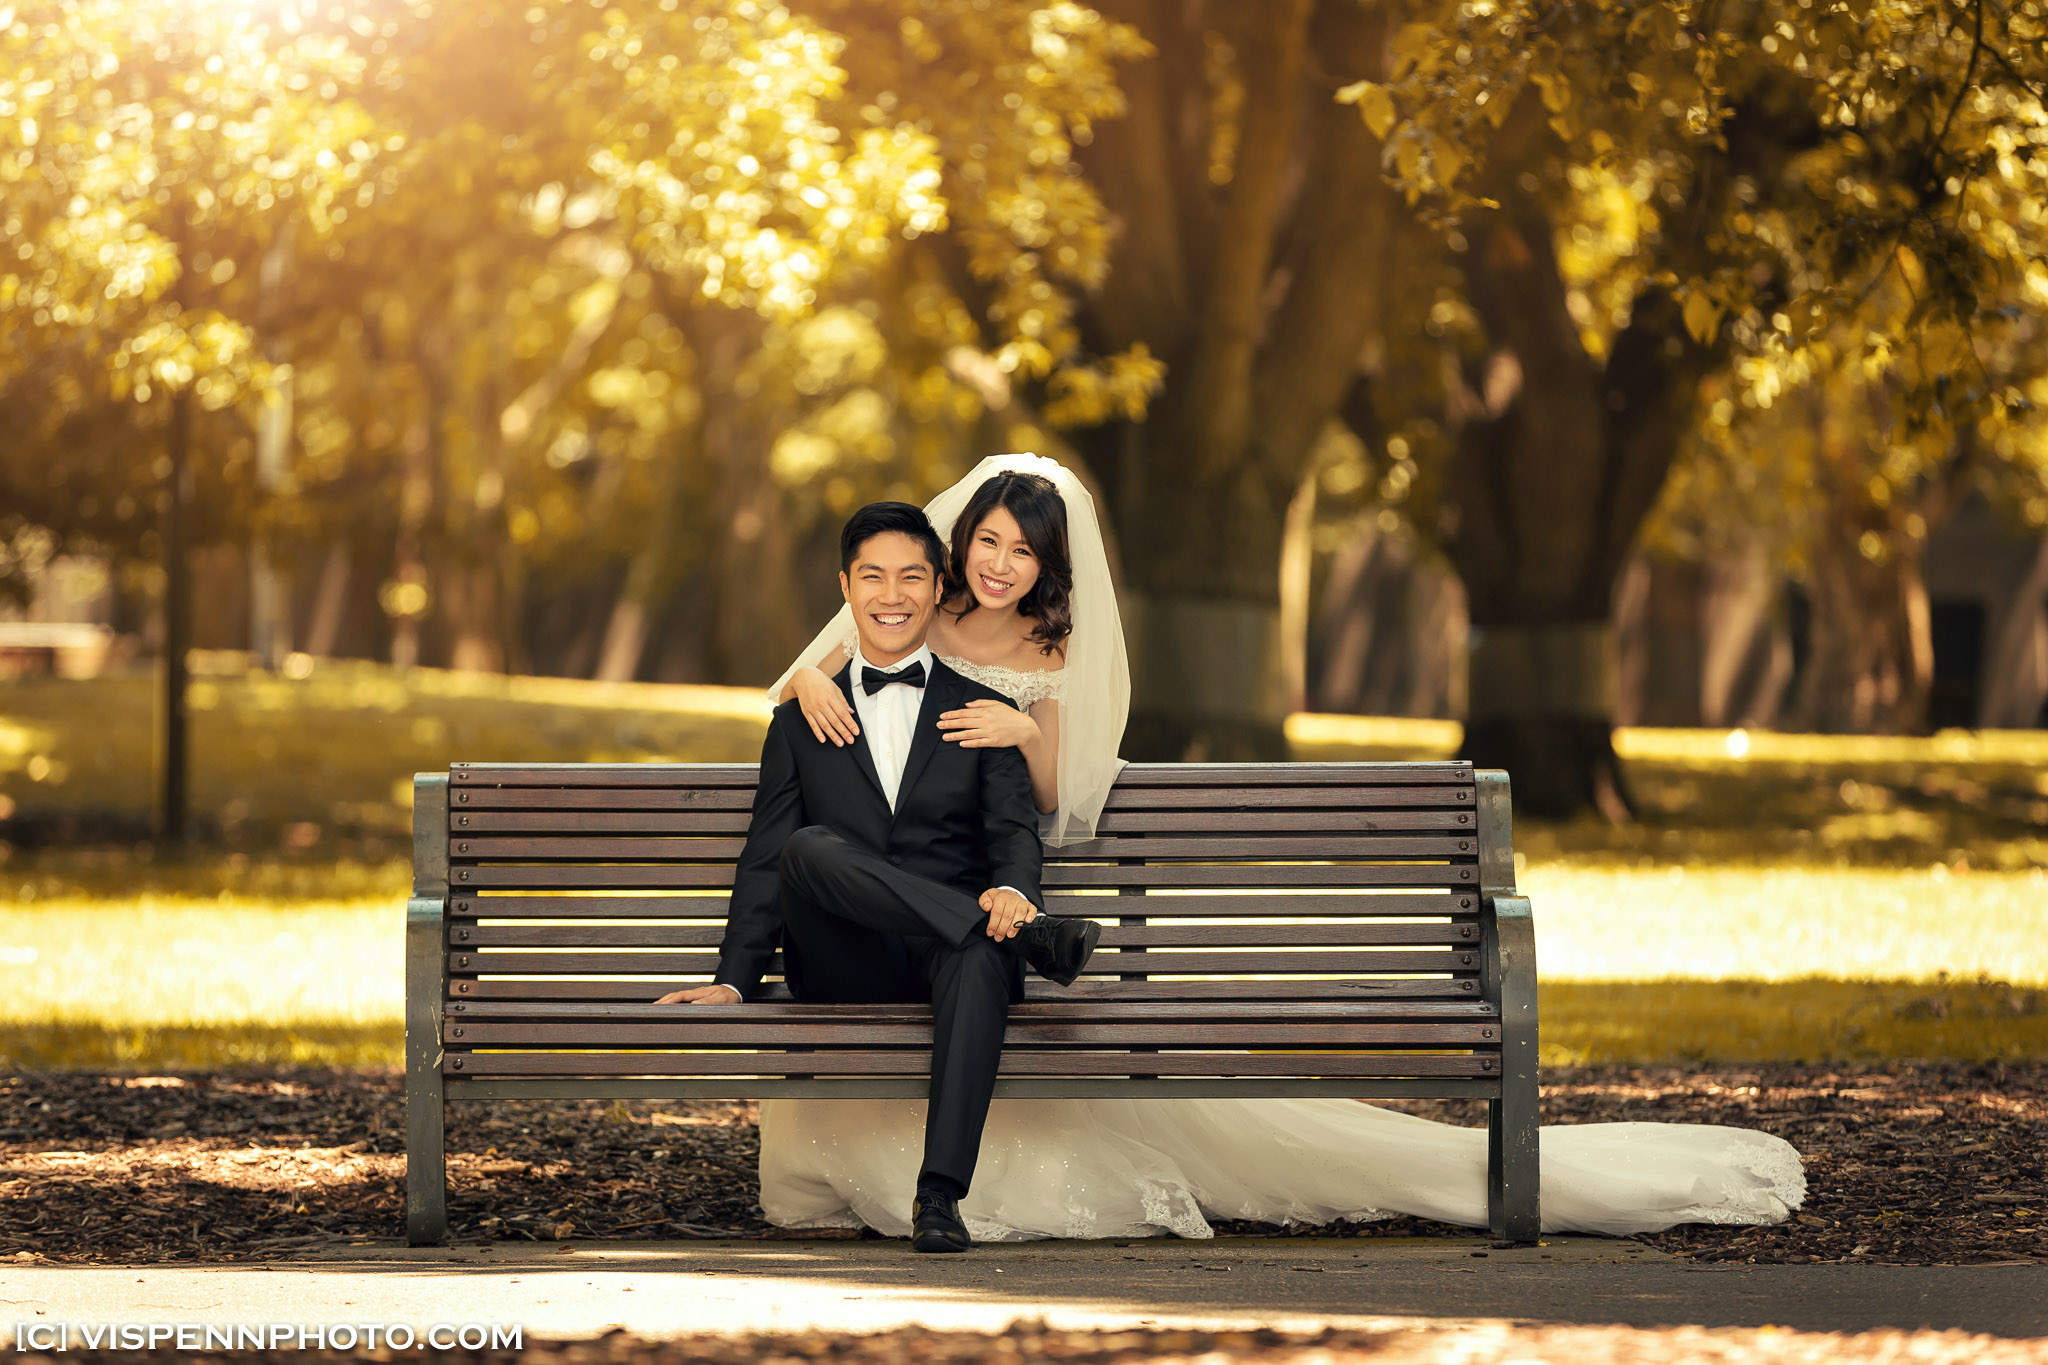 PRE WEDDING Photography Melbourne ZHPENN Cindi 0193